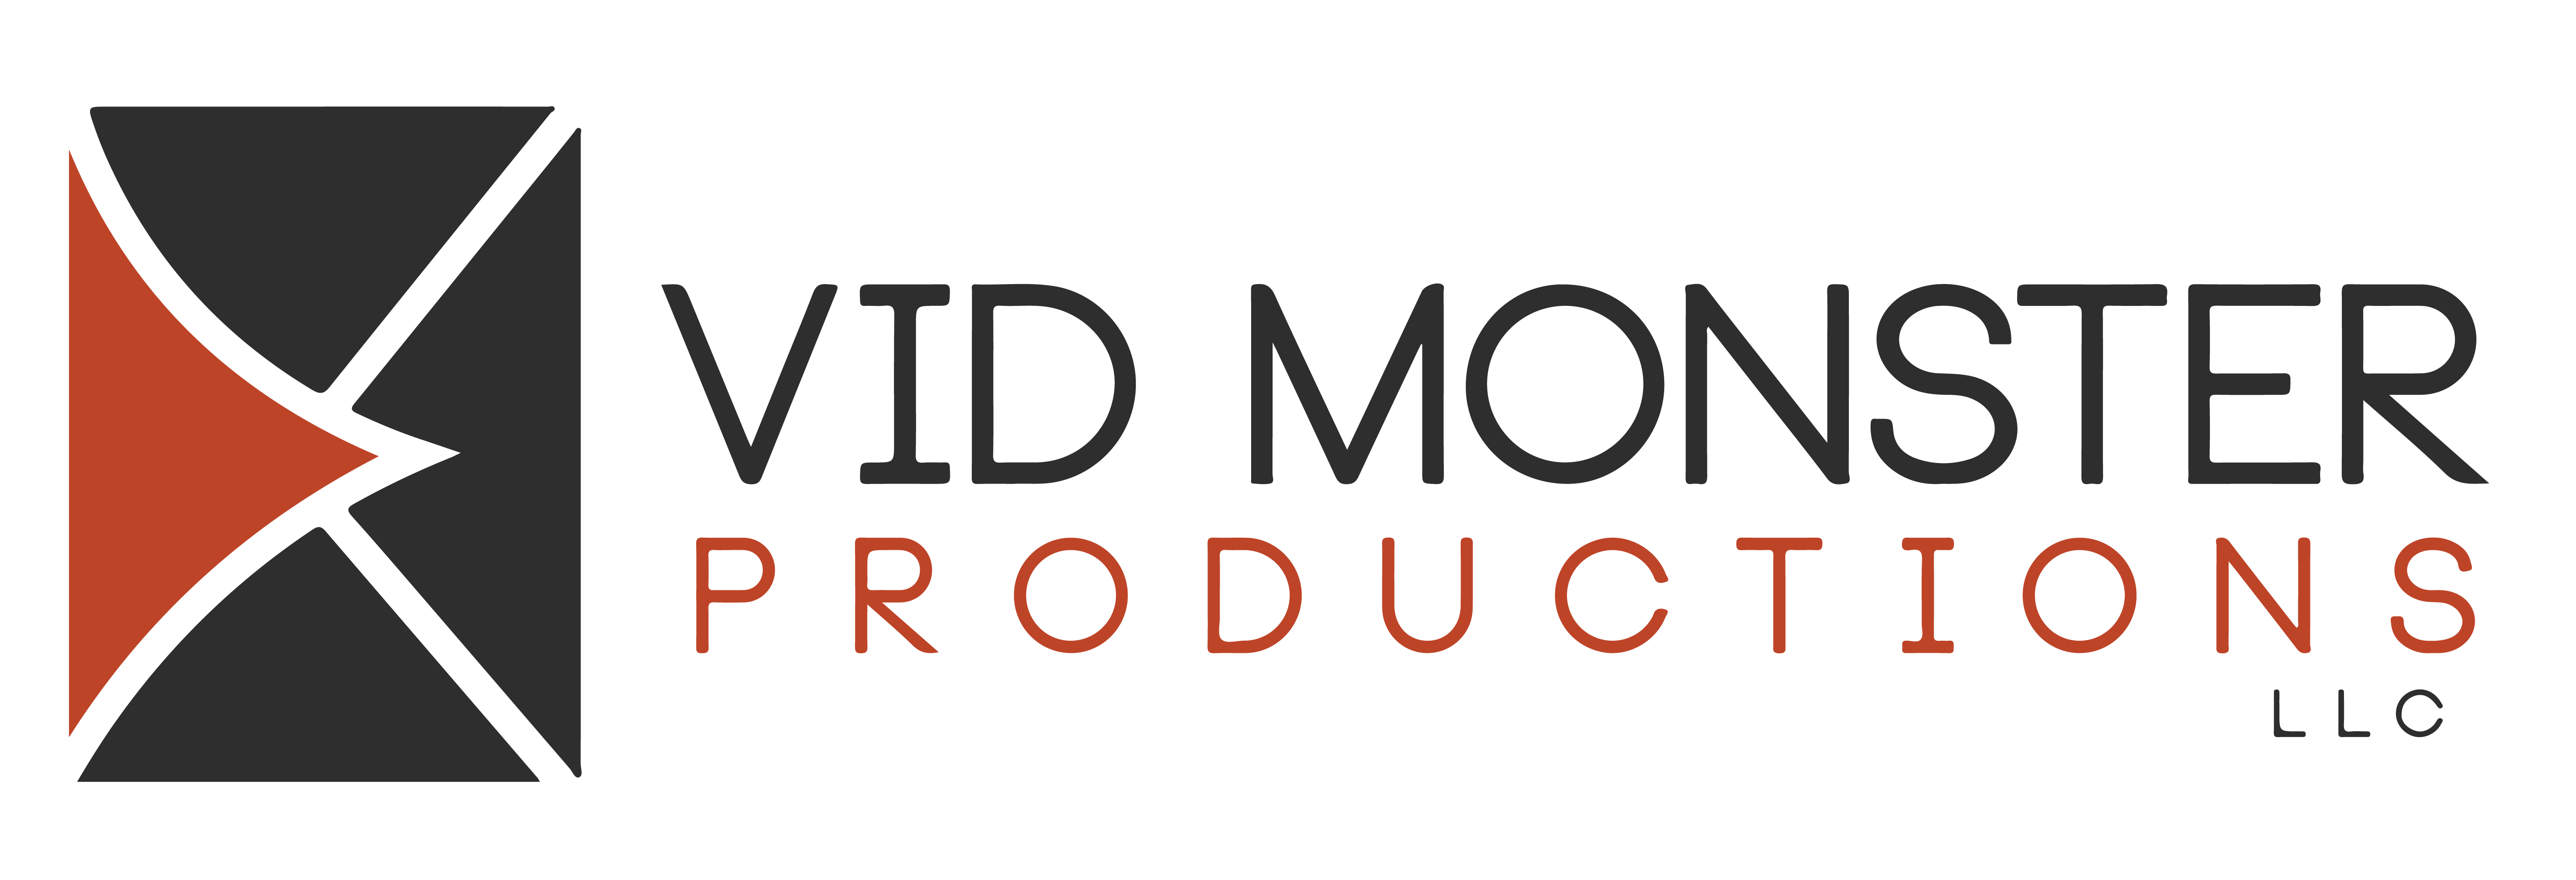 Vid Monster logo